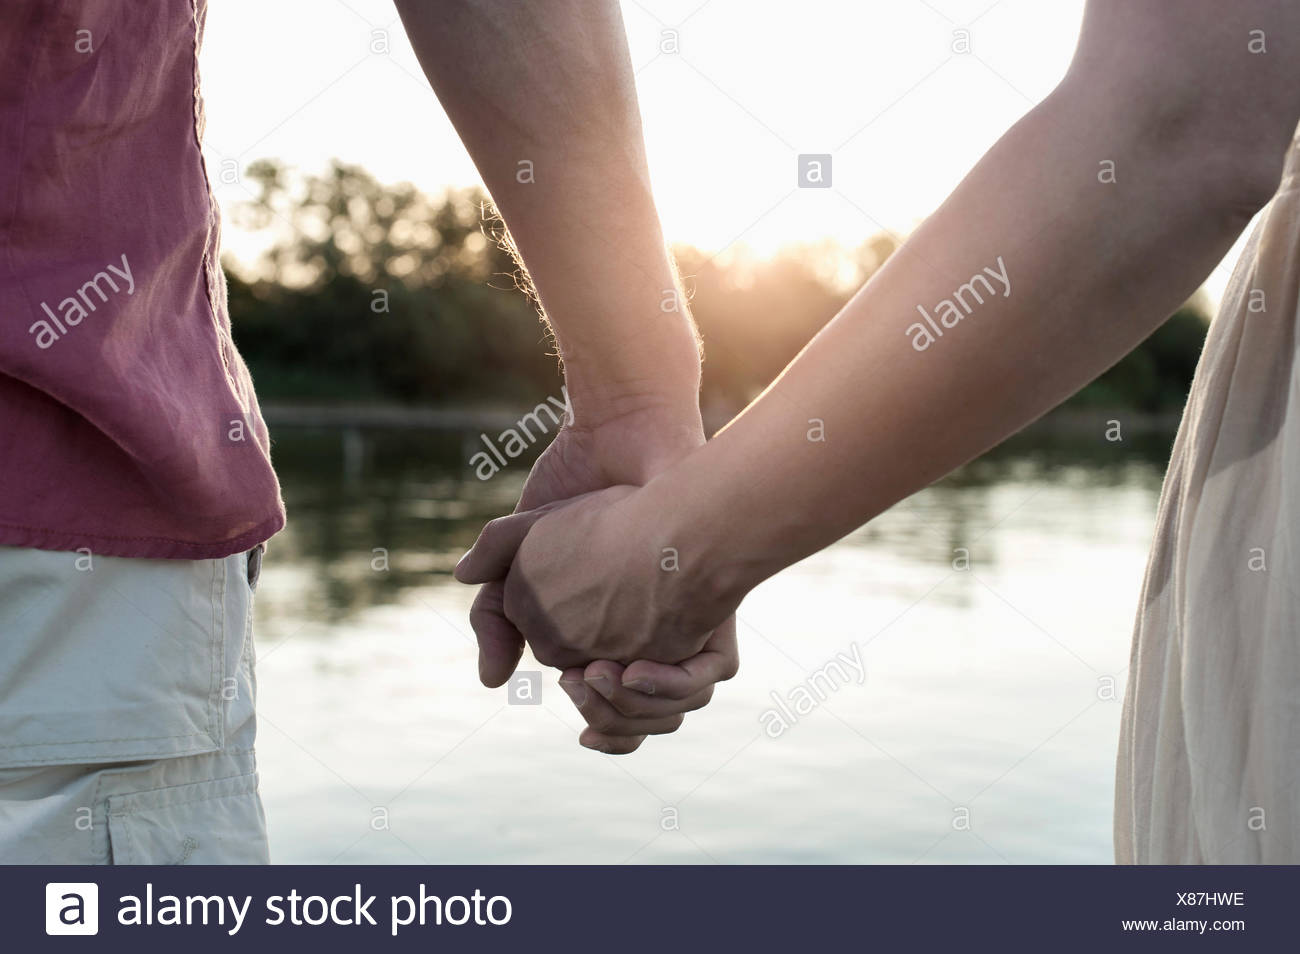 Mid section view of a couple in love holding hands during sunset, Bavaria, Germany - Stock Image